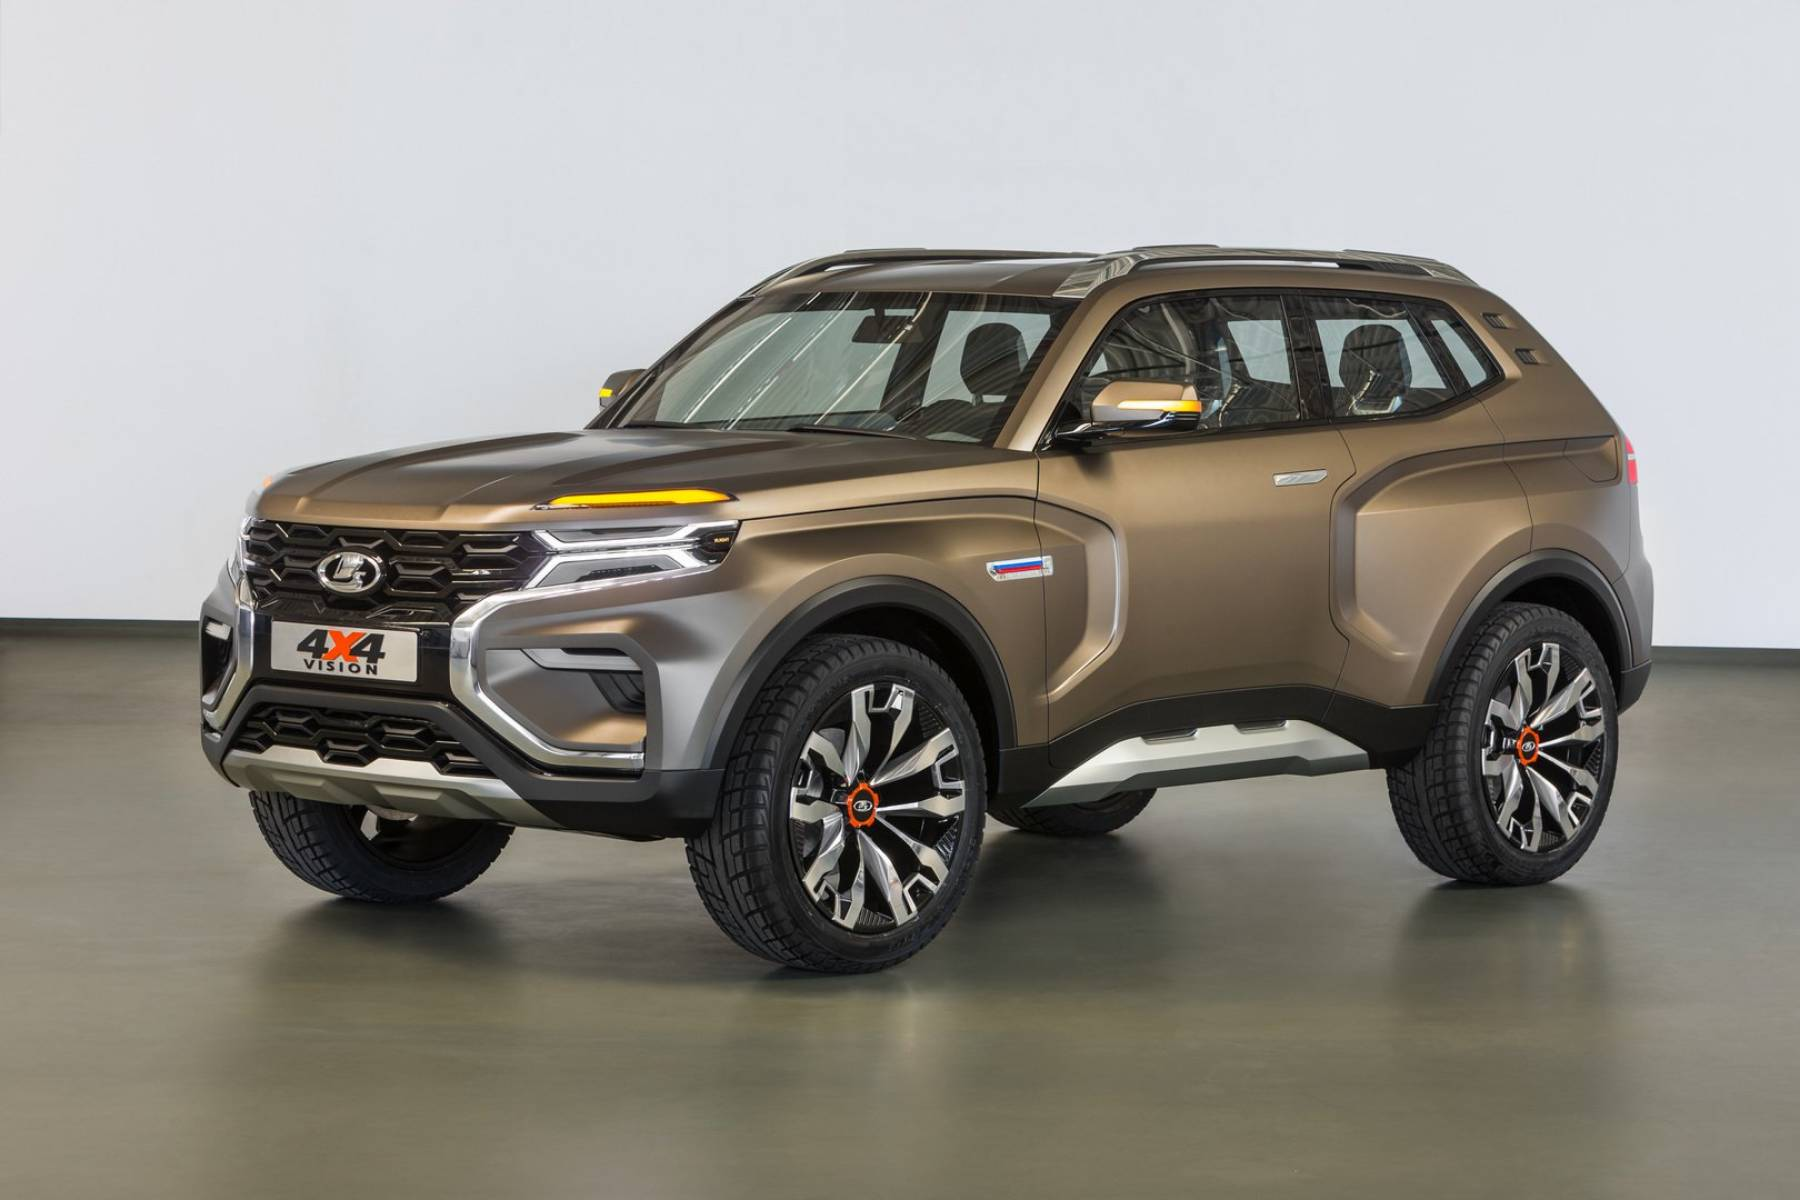 New Lada Niva 2018 >> Lada 4x4 Vision Concept could preview a new Niva | Motoring Research